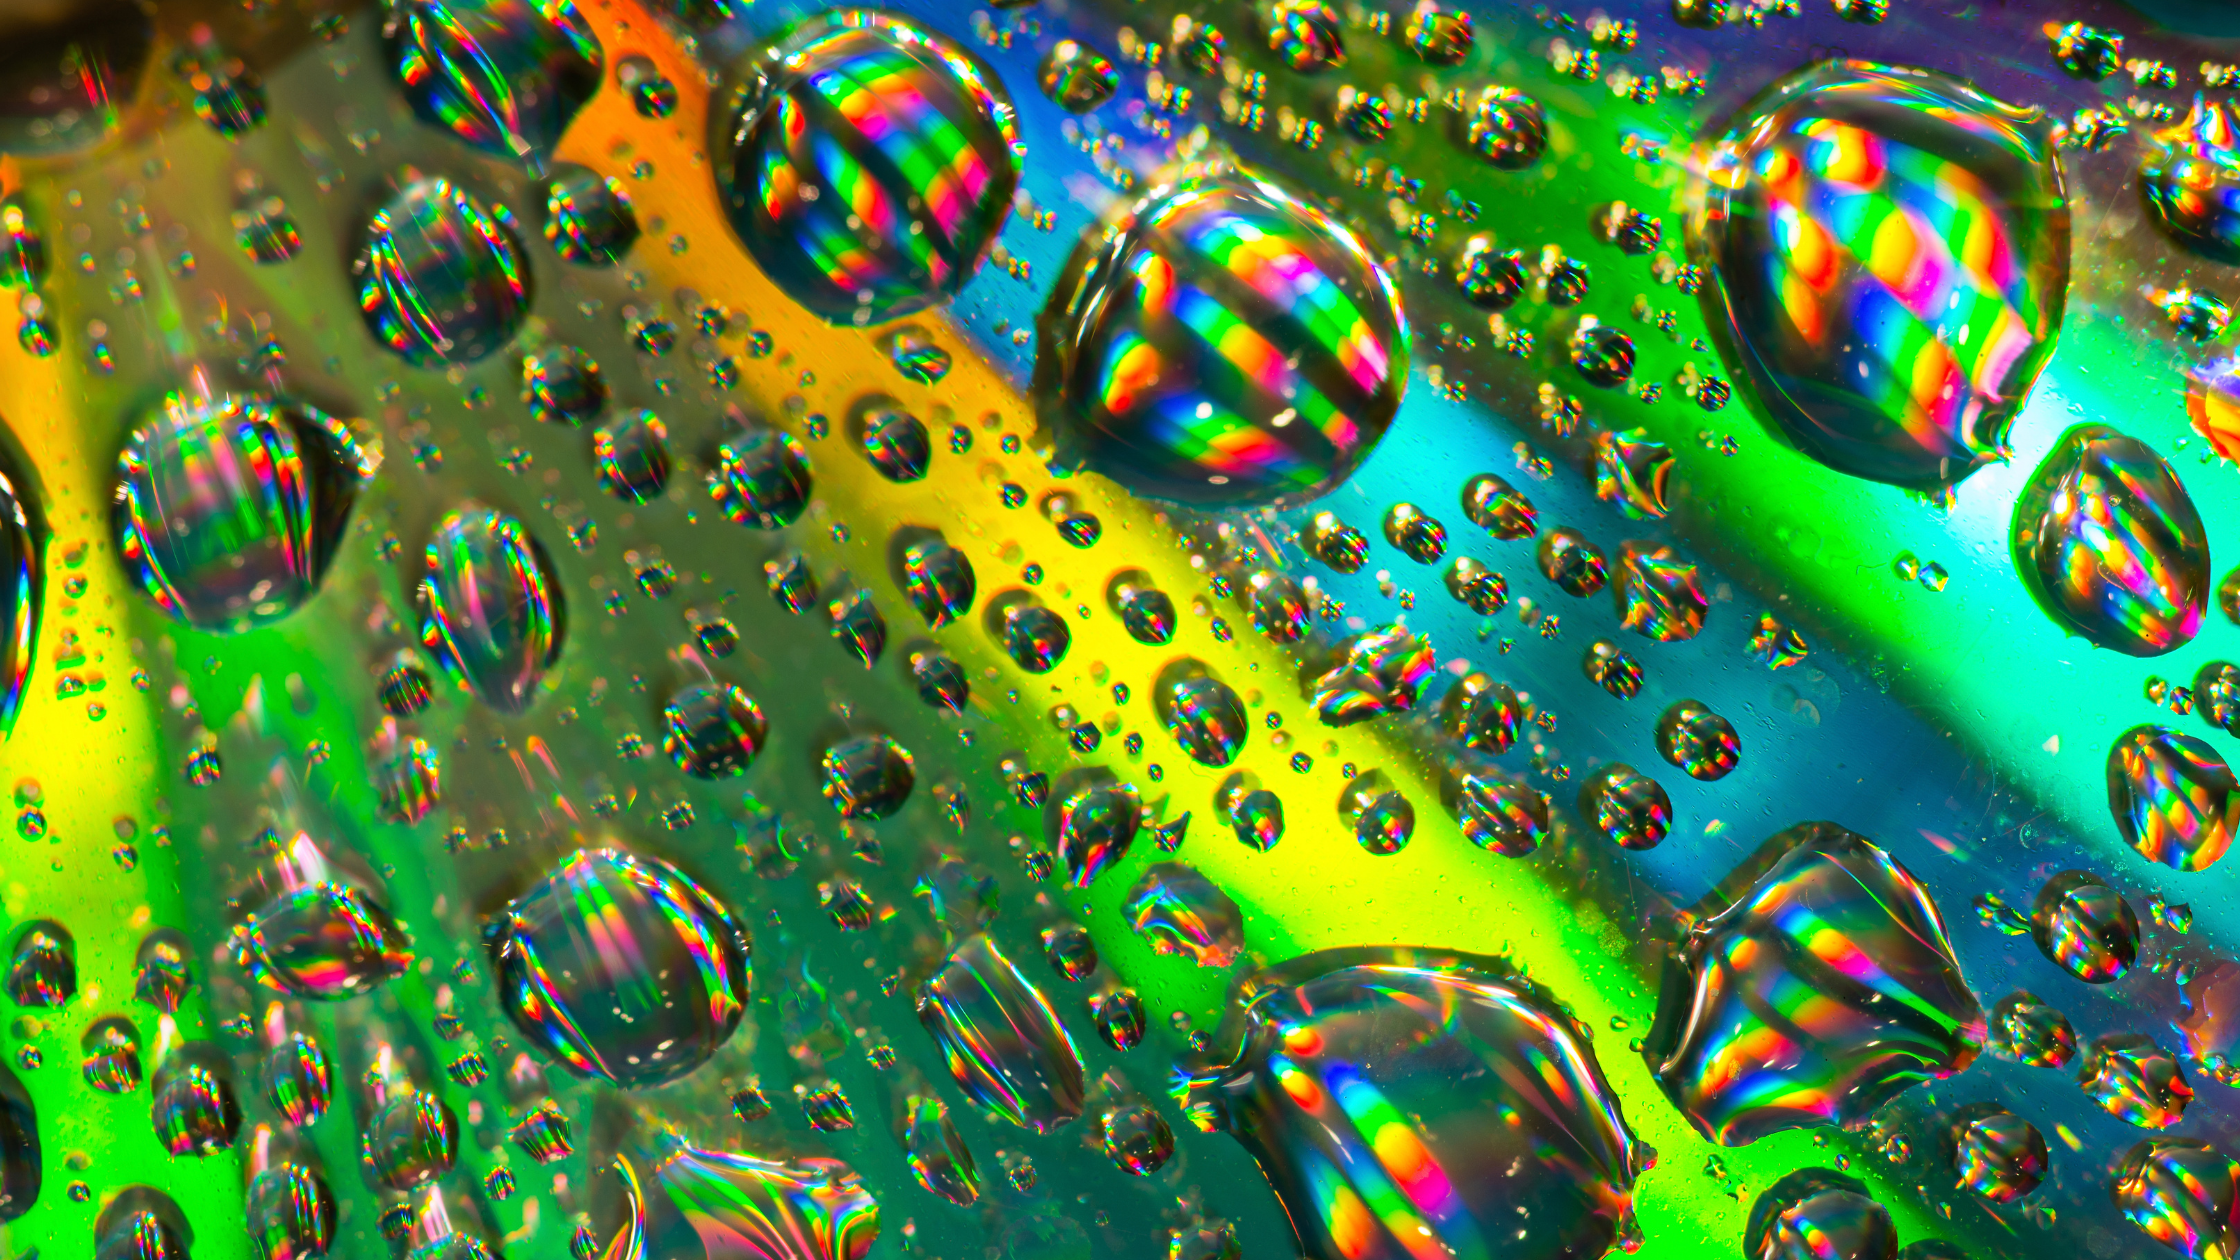 water droplets on rainbow